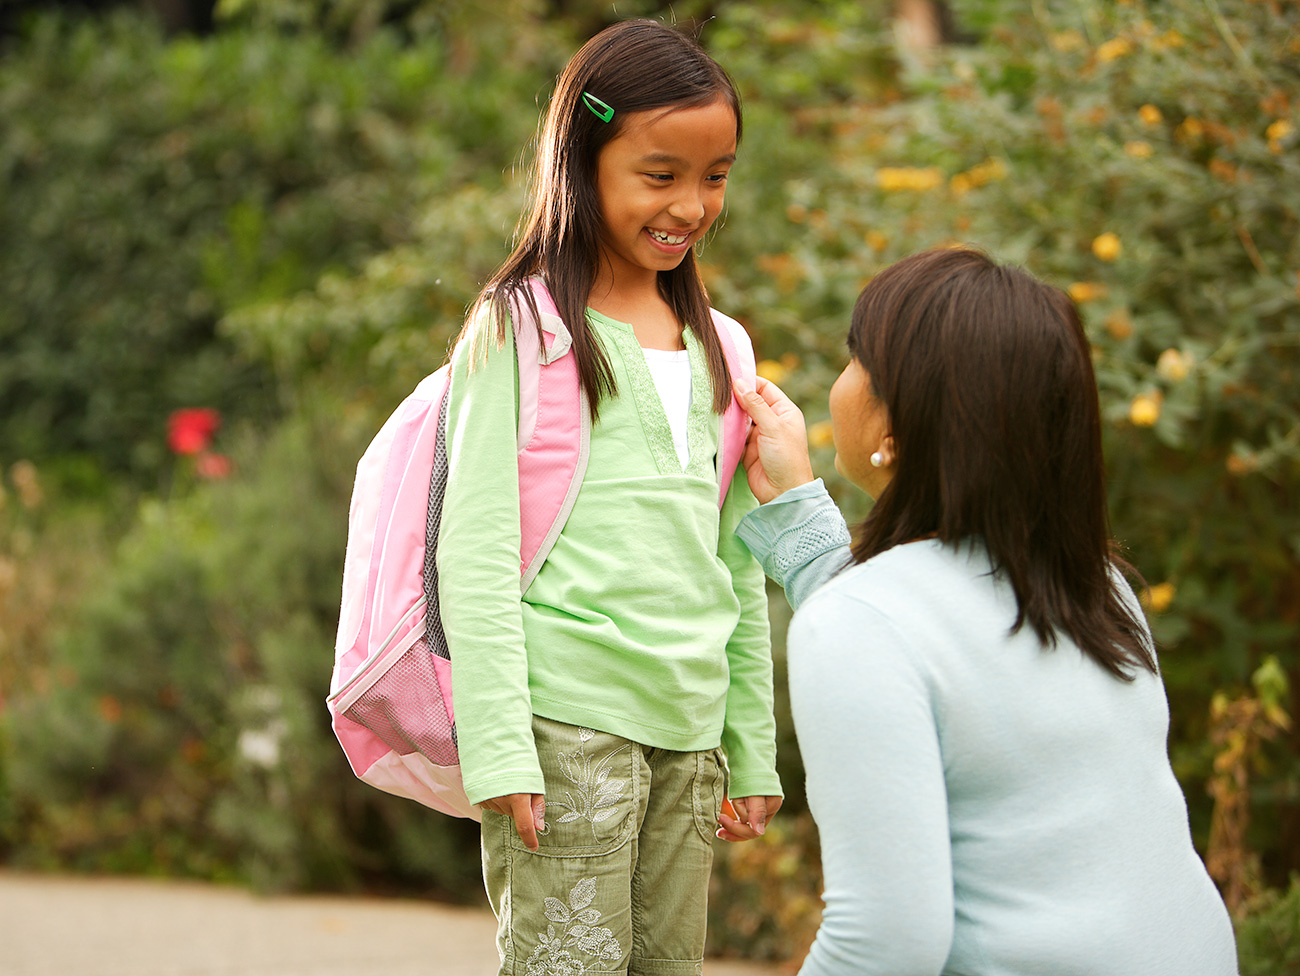 Child with backpack smiling at mother